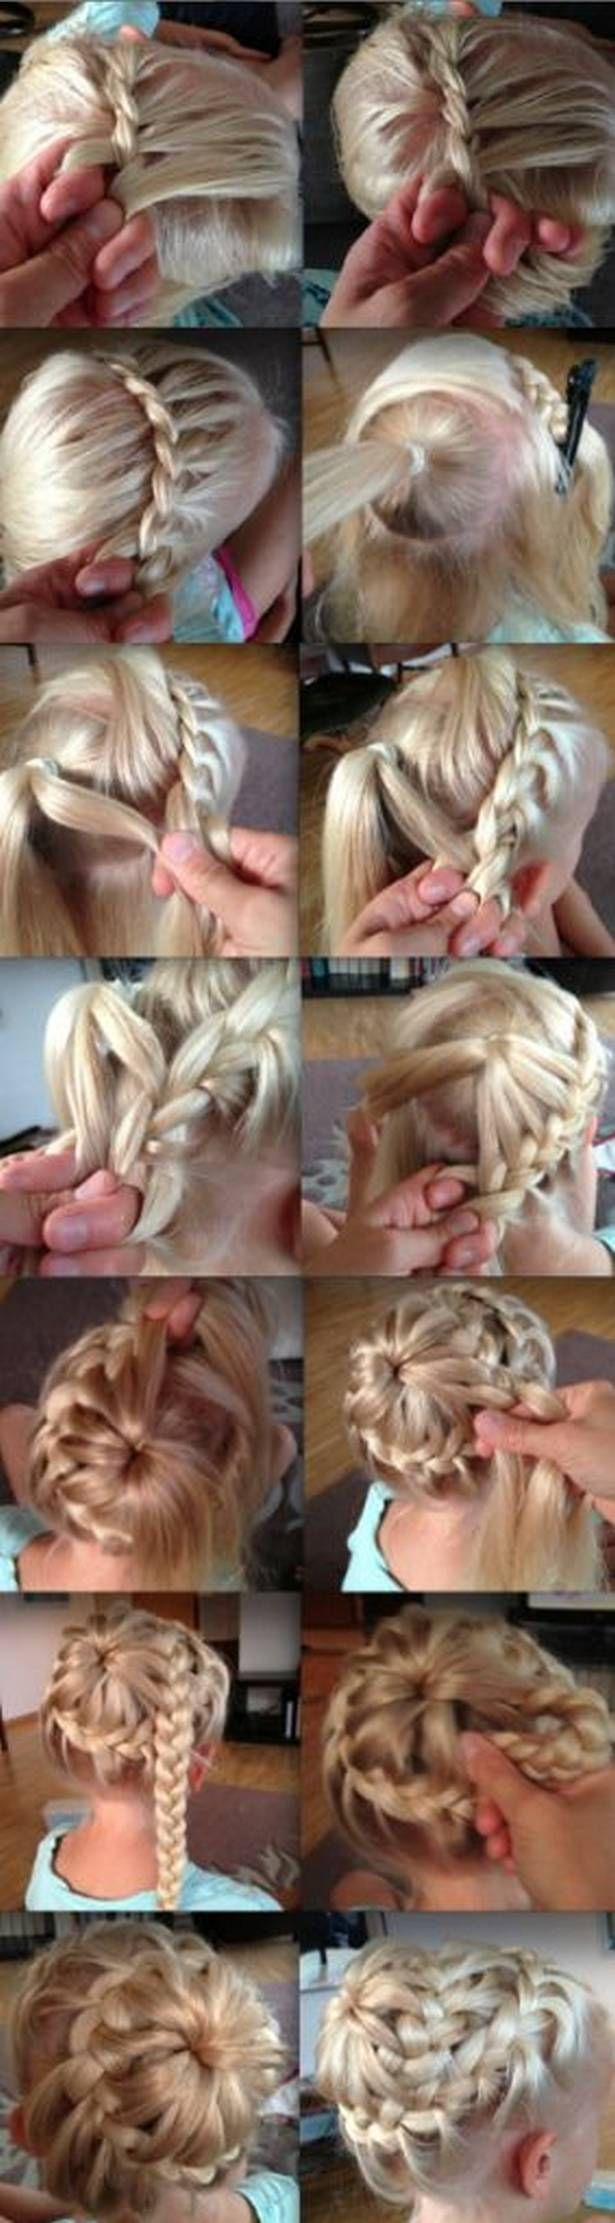 Make Your Hair Look Gorgeous By Following Our Tips And DIY Hair Tricks